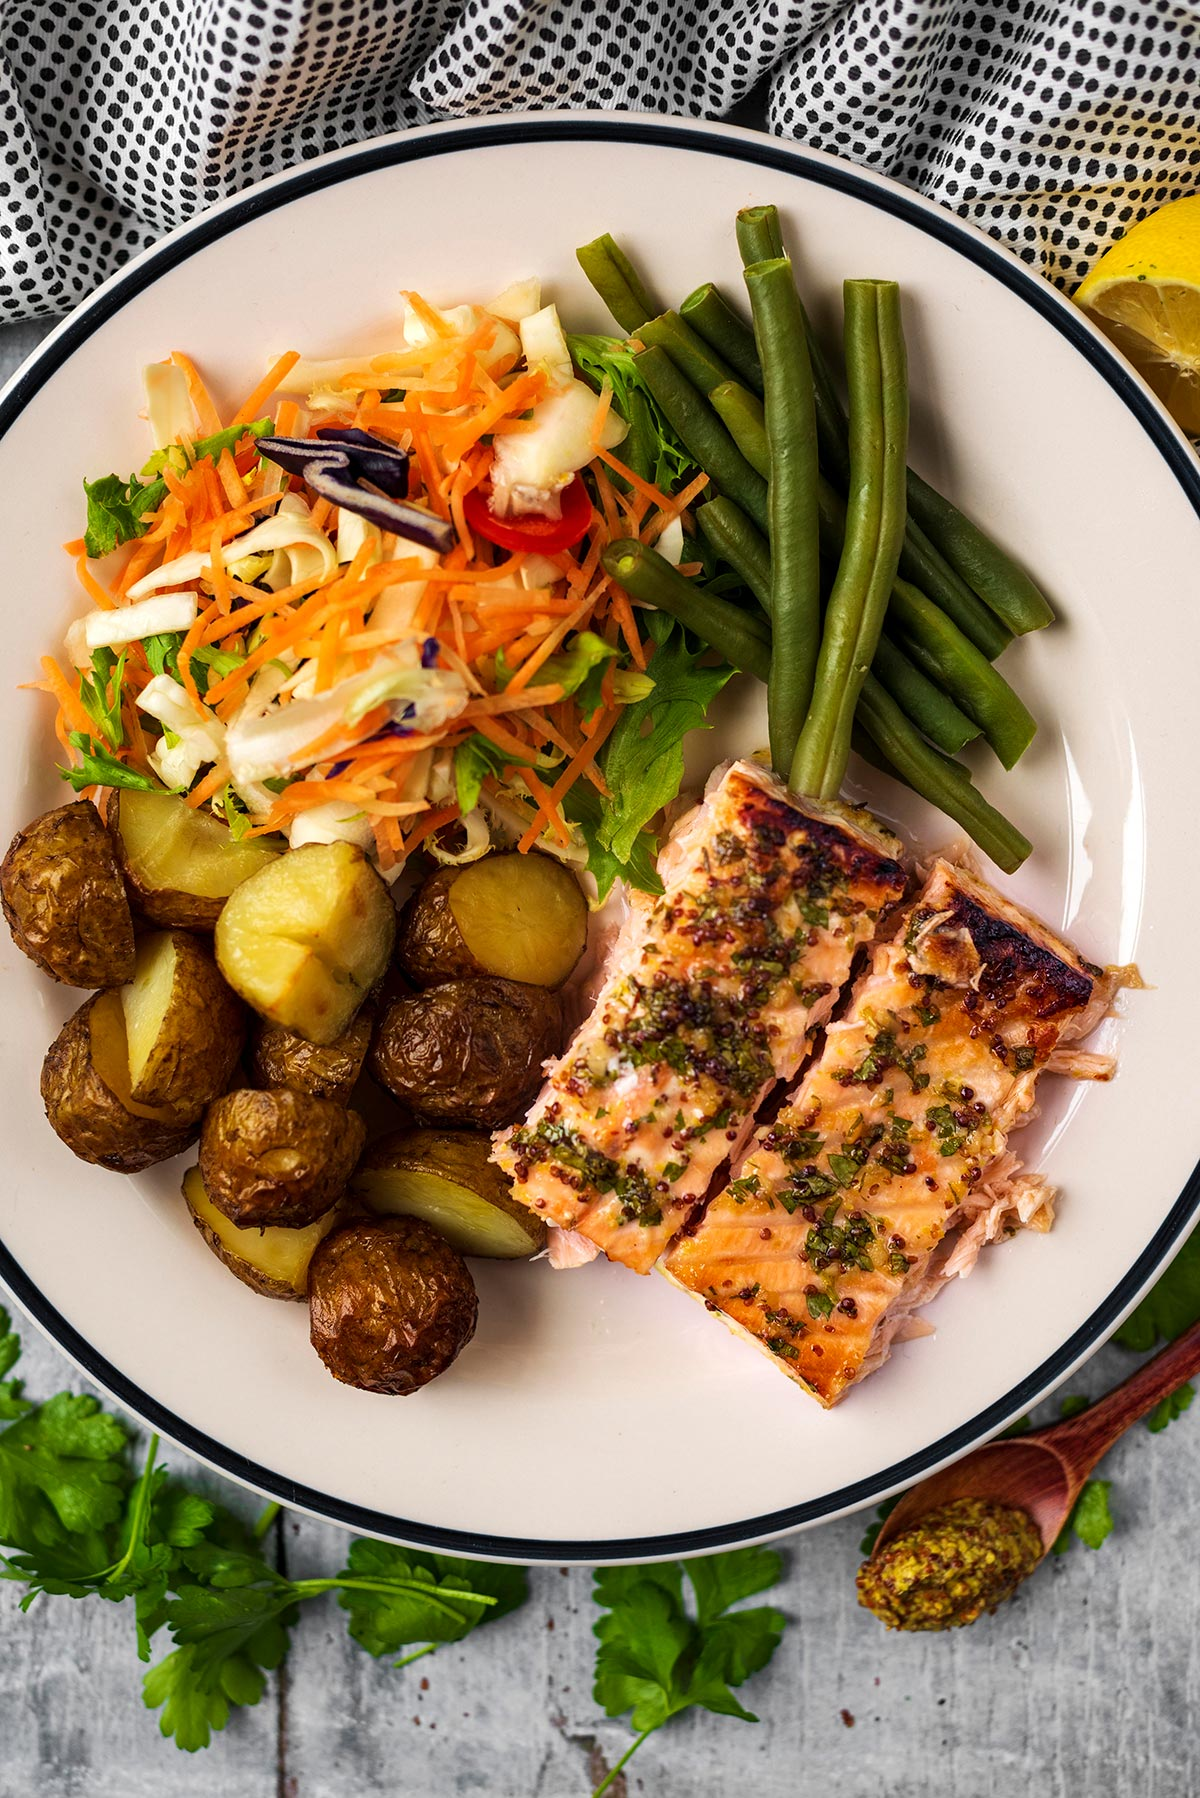 Two cooked salmon fillets on a plate with roasted potatoes, green beans and salad